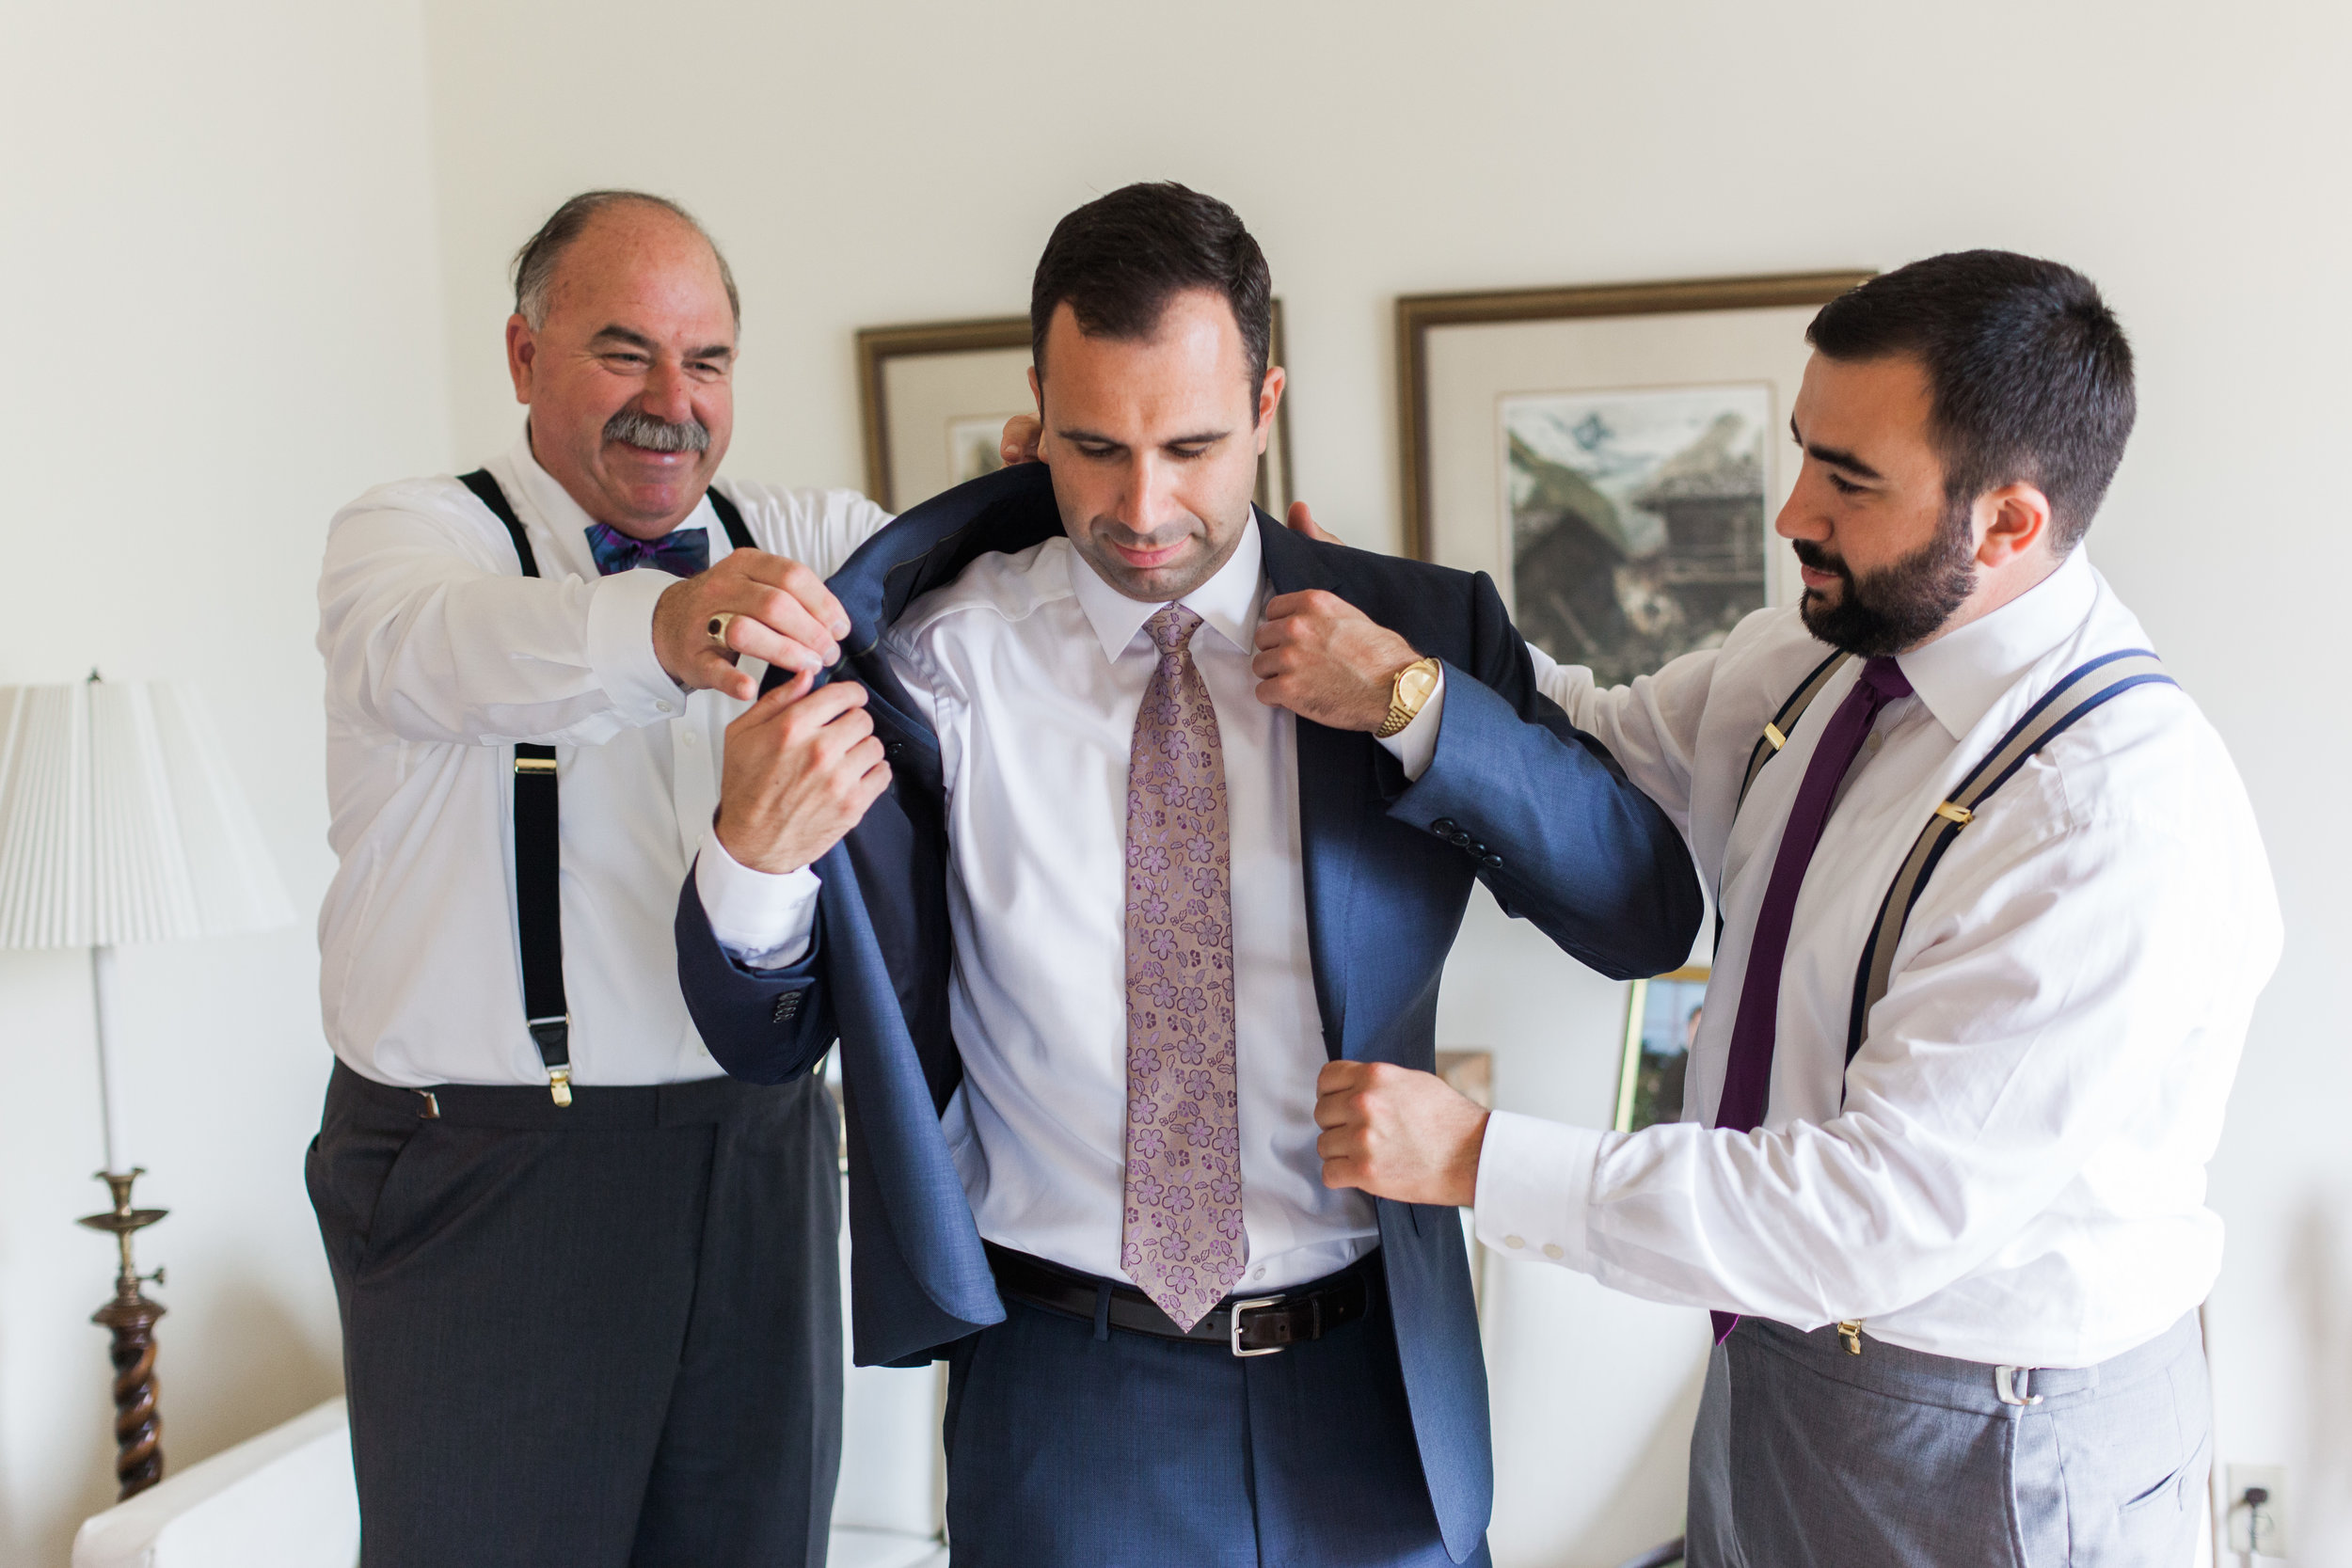 style-inspired-wedding-at-firehouse-8-in-san-francisco-9.jpg